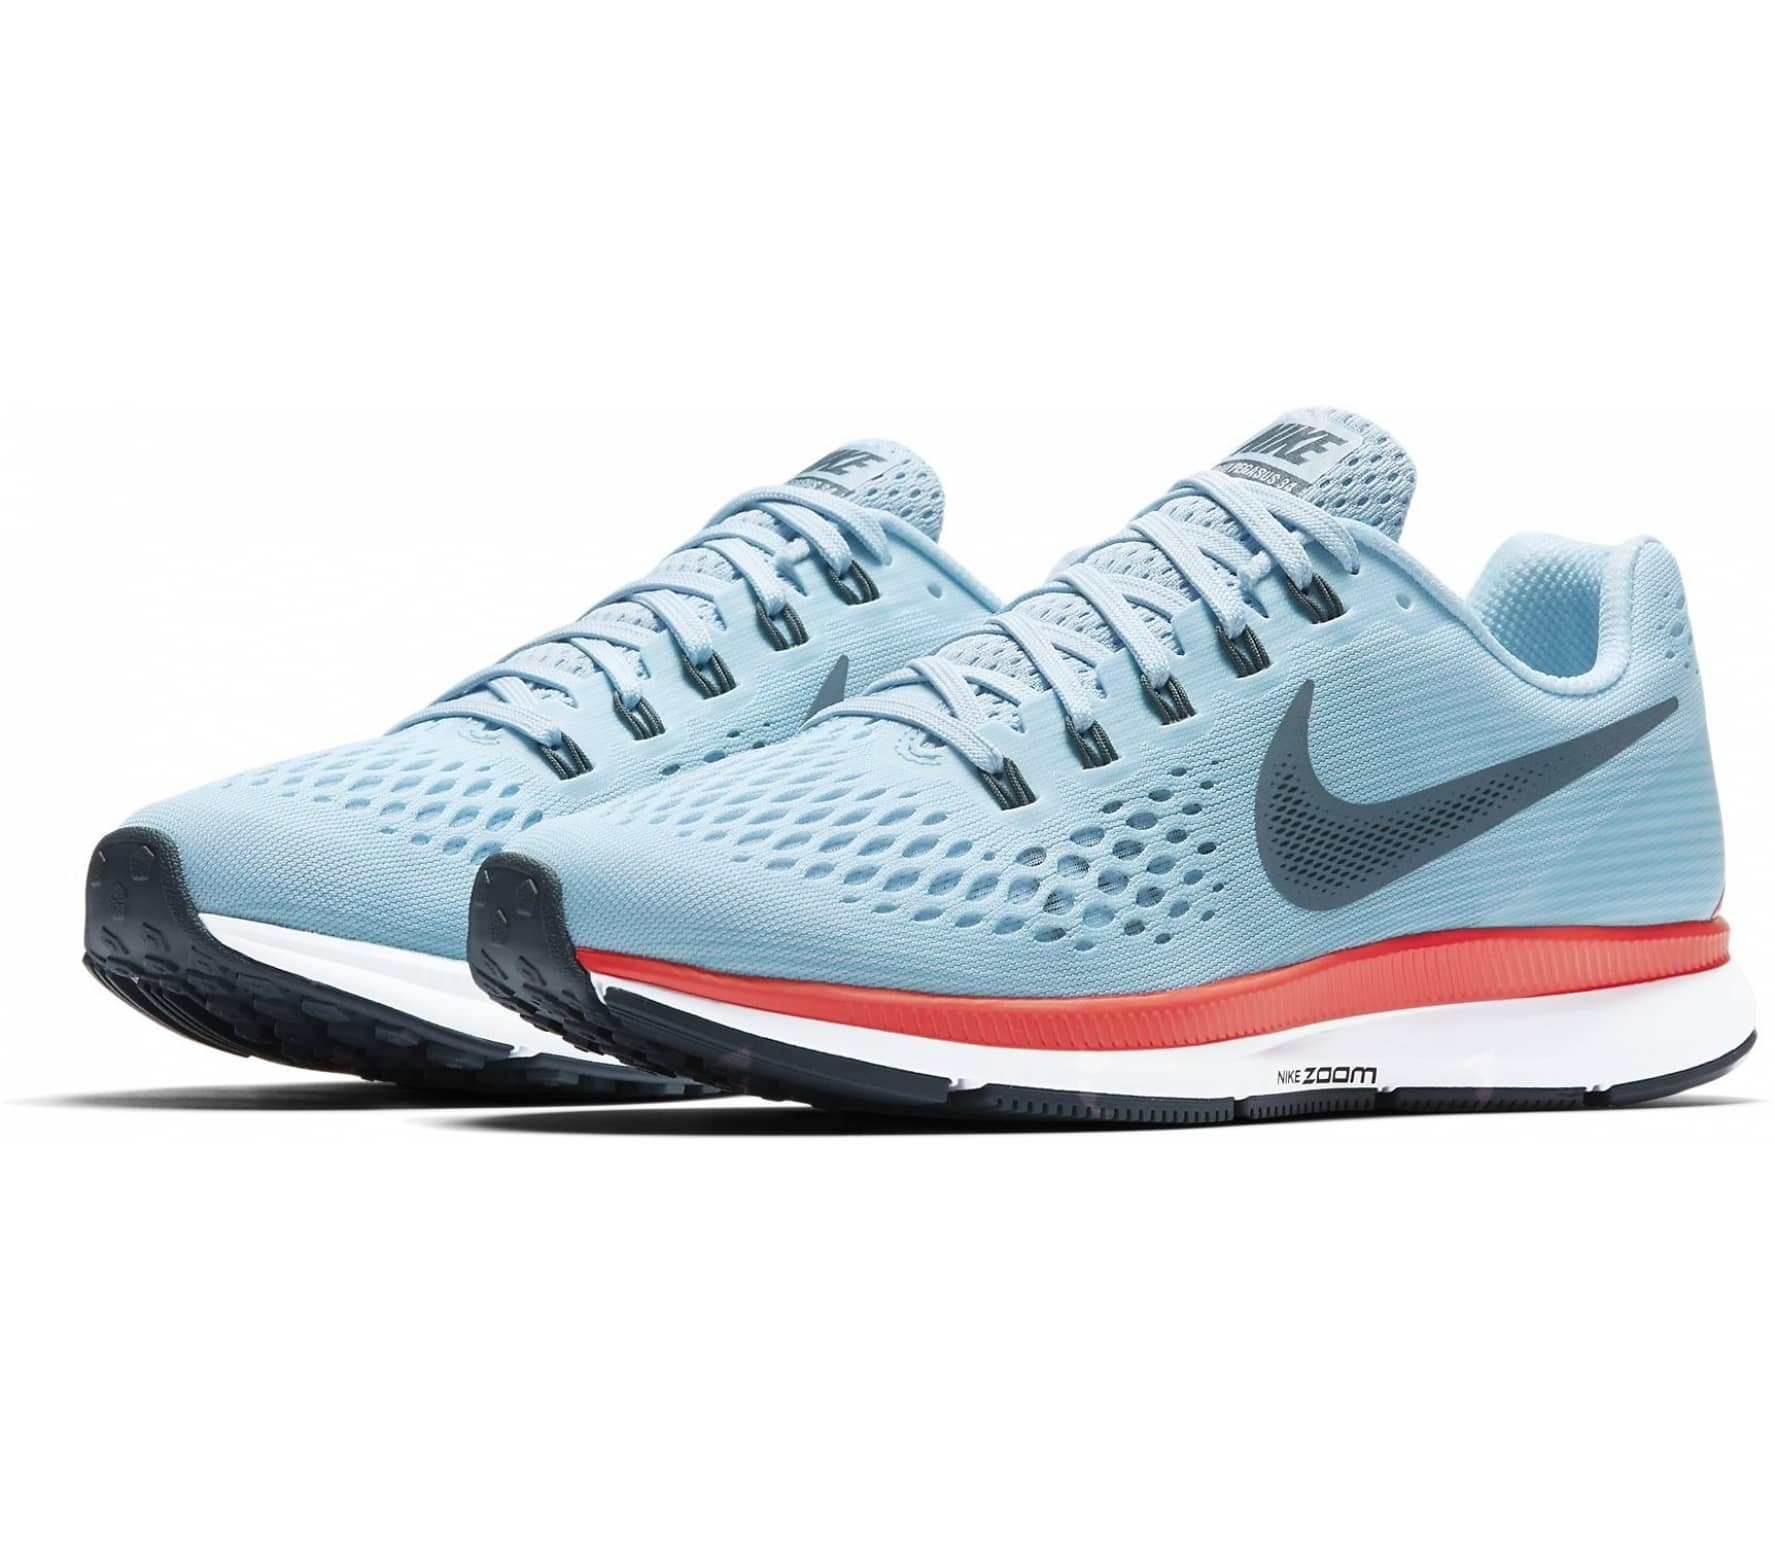 reputable site d8dd2 d392f Nike - Air Zoom Pegasus 34 women s running shoes (light blue)